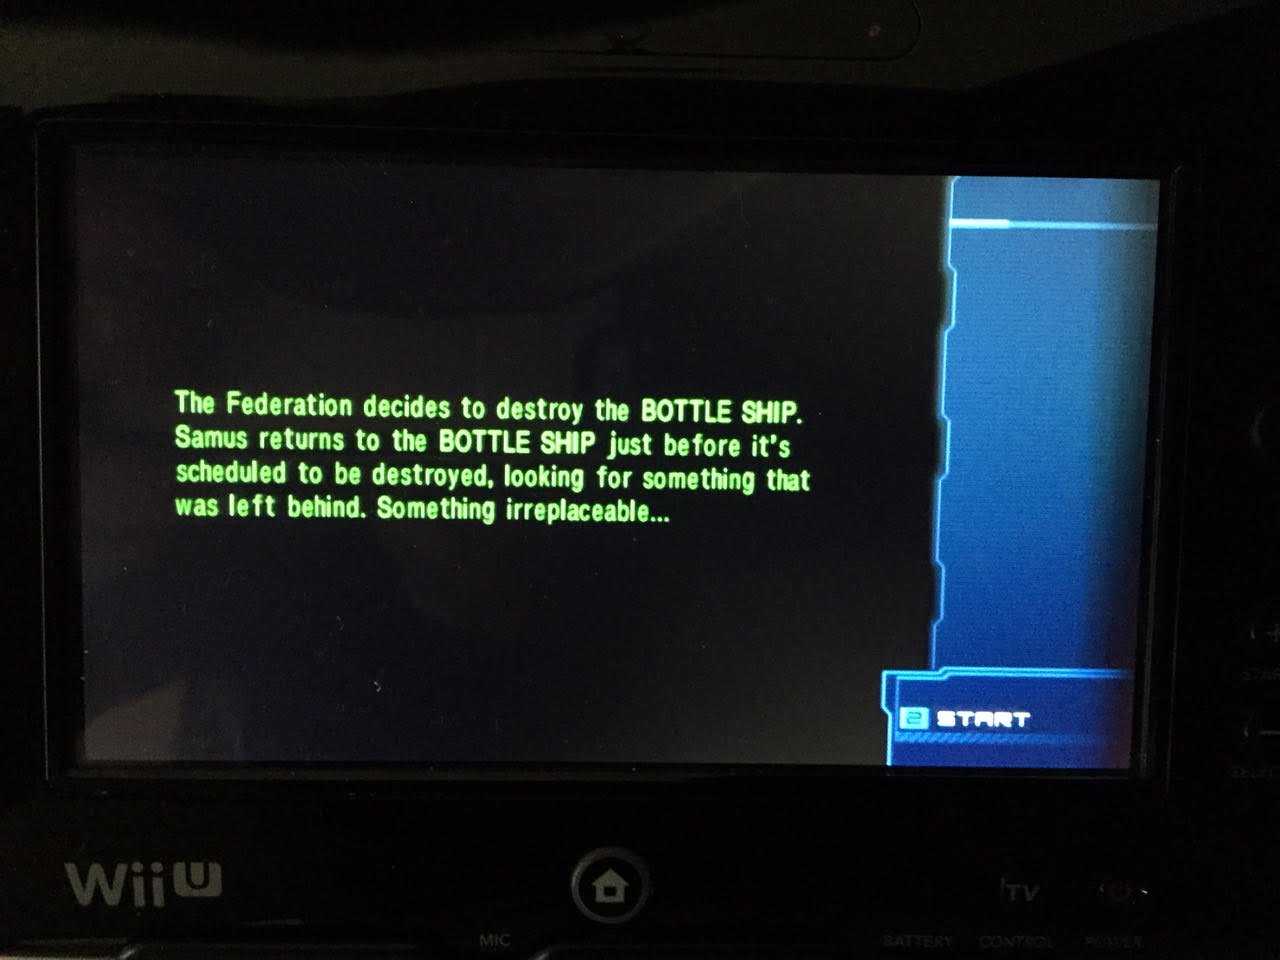 Metroid: Other M  helpfully catches you up on the latest story details whenever you boot up a saved game.